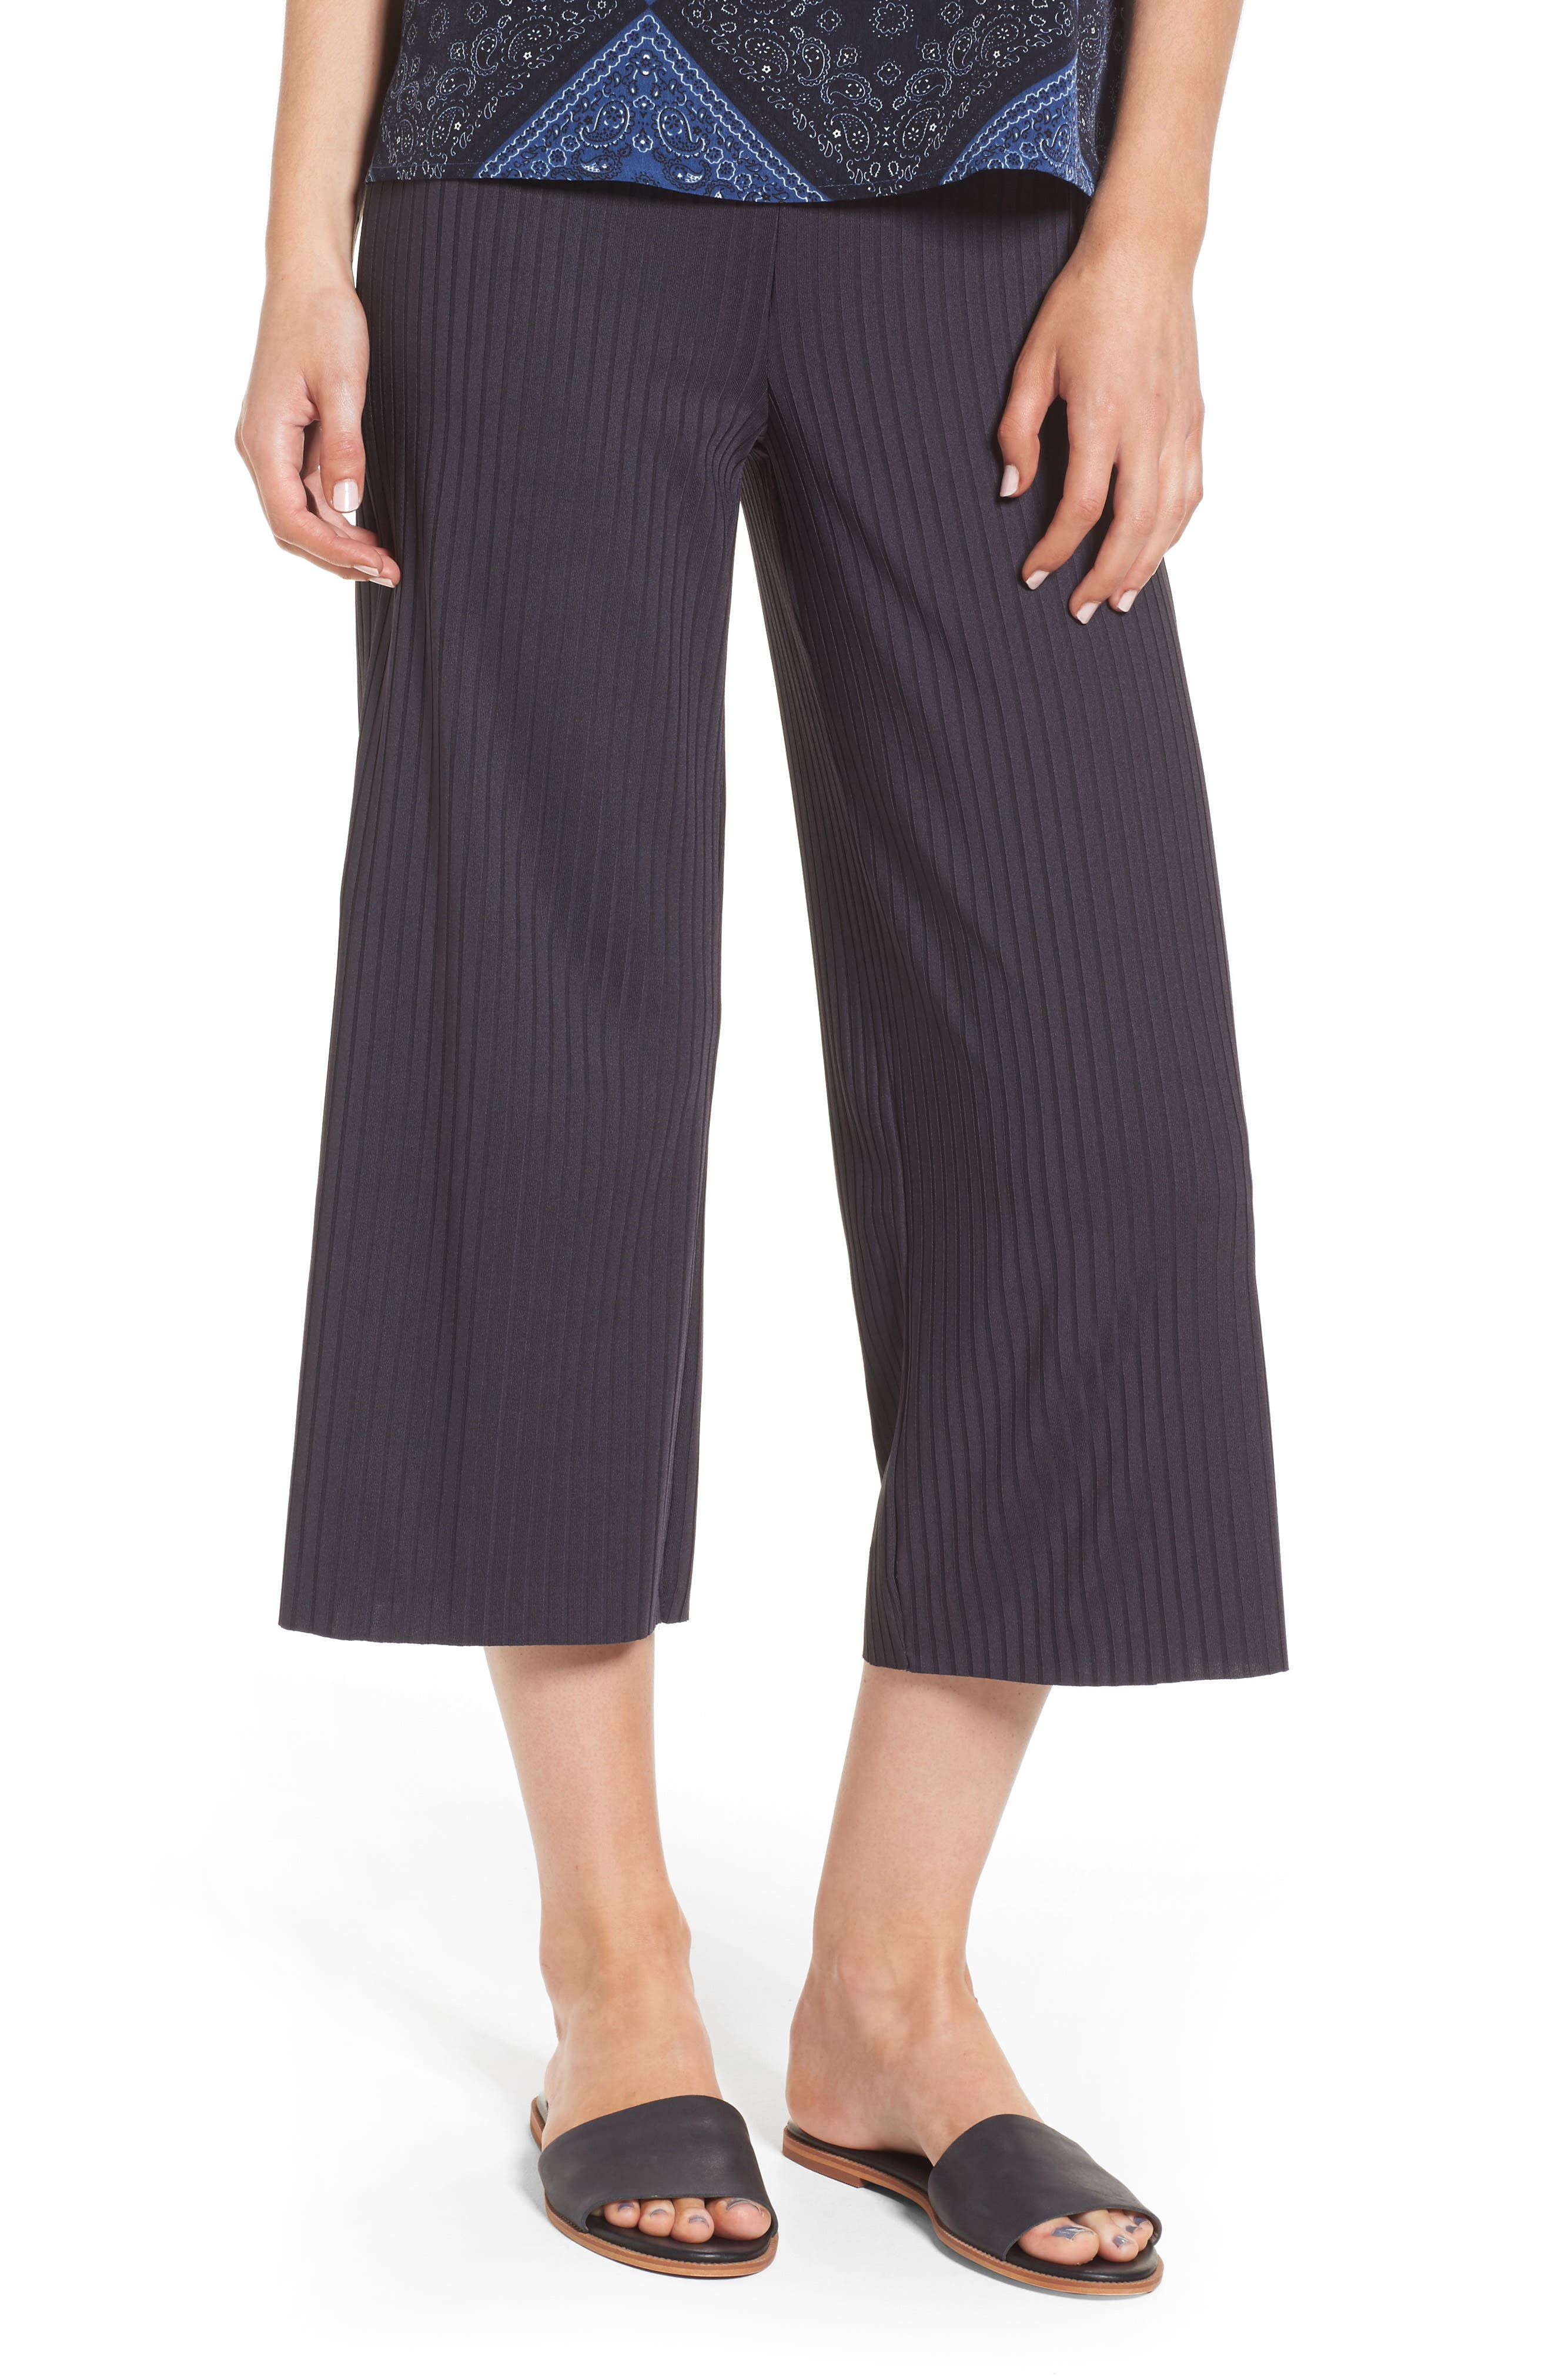 Jefferson Cropped Pant,                         Main,                         color, Navy